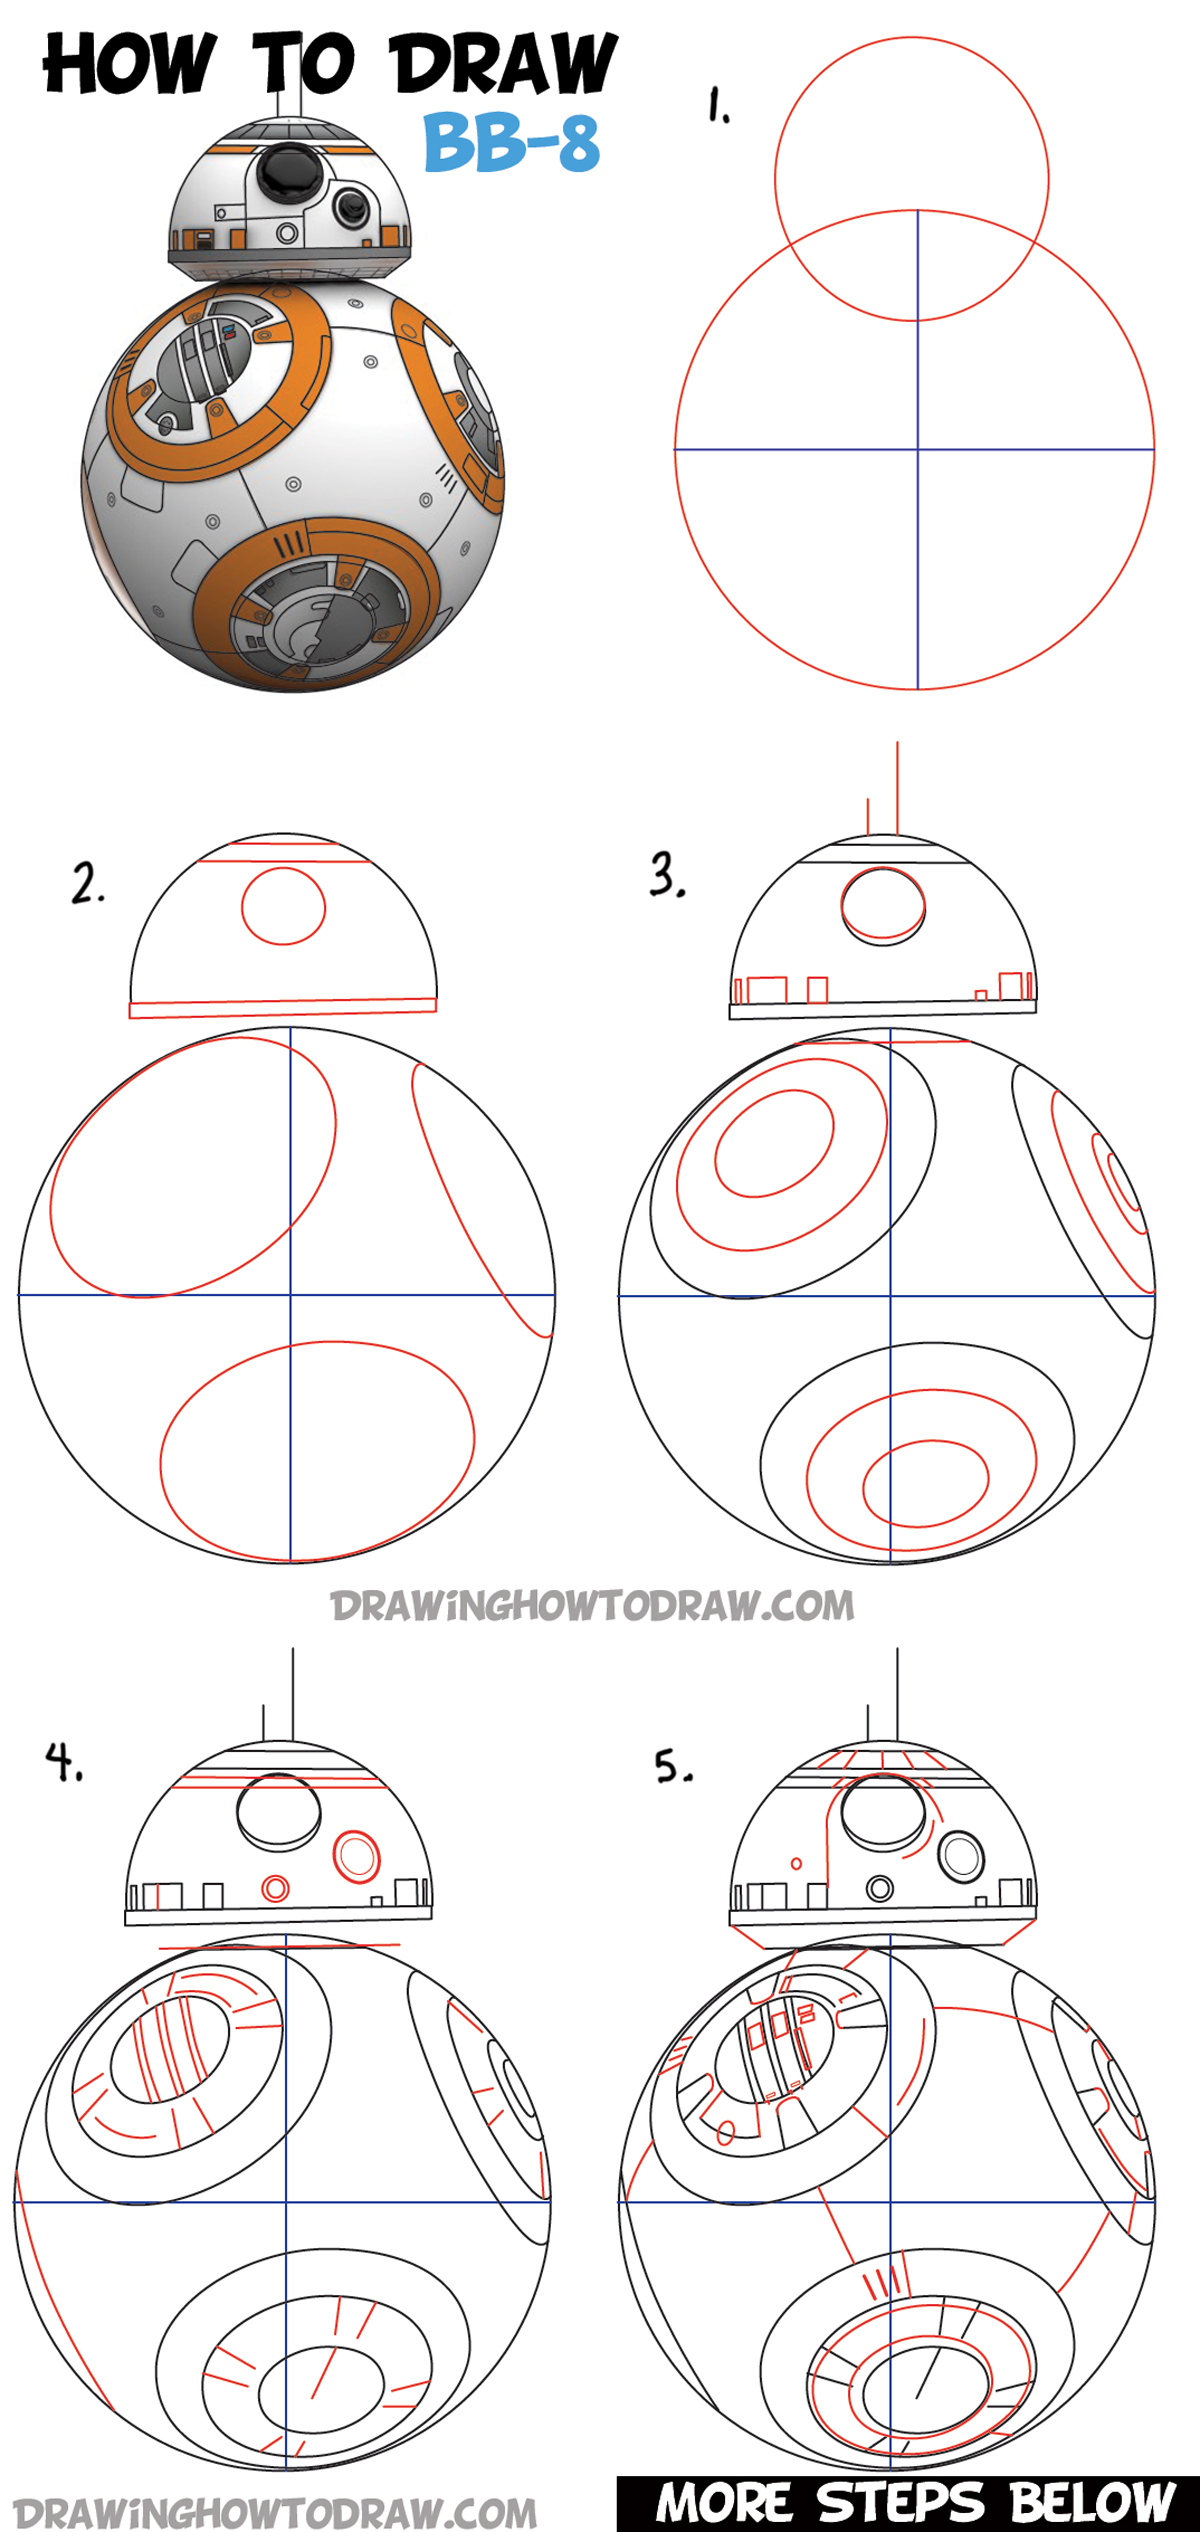 How to Draw BB-8 (Beeby-Ate) Droid from Star Wars Drawing Tutorial ...